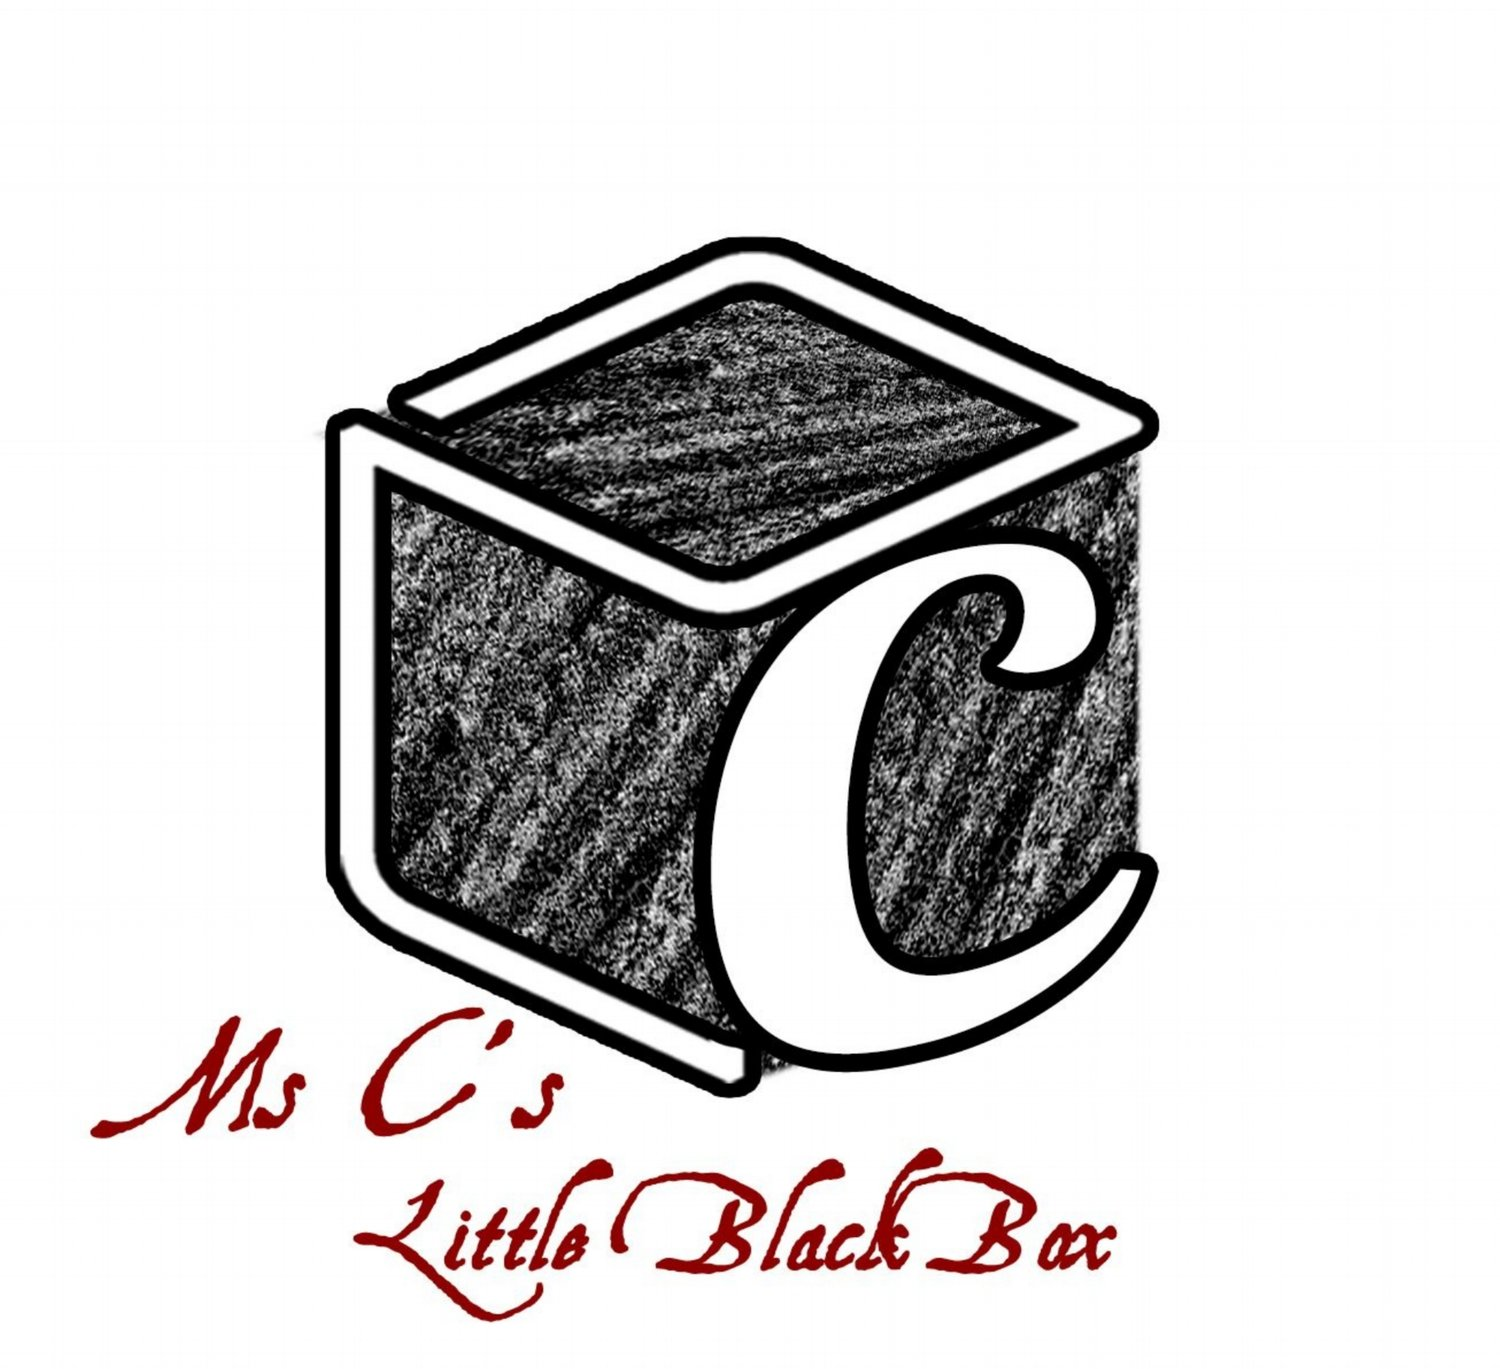 Ms C's Little Blackbox Productions